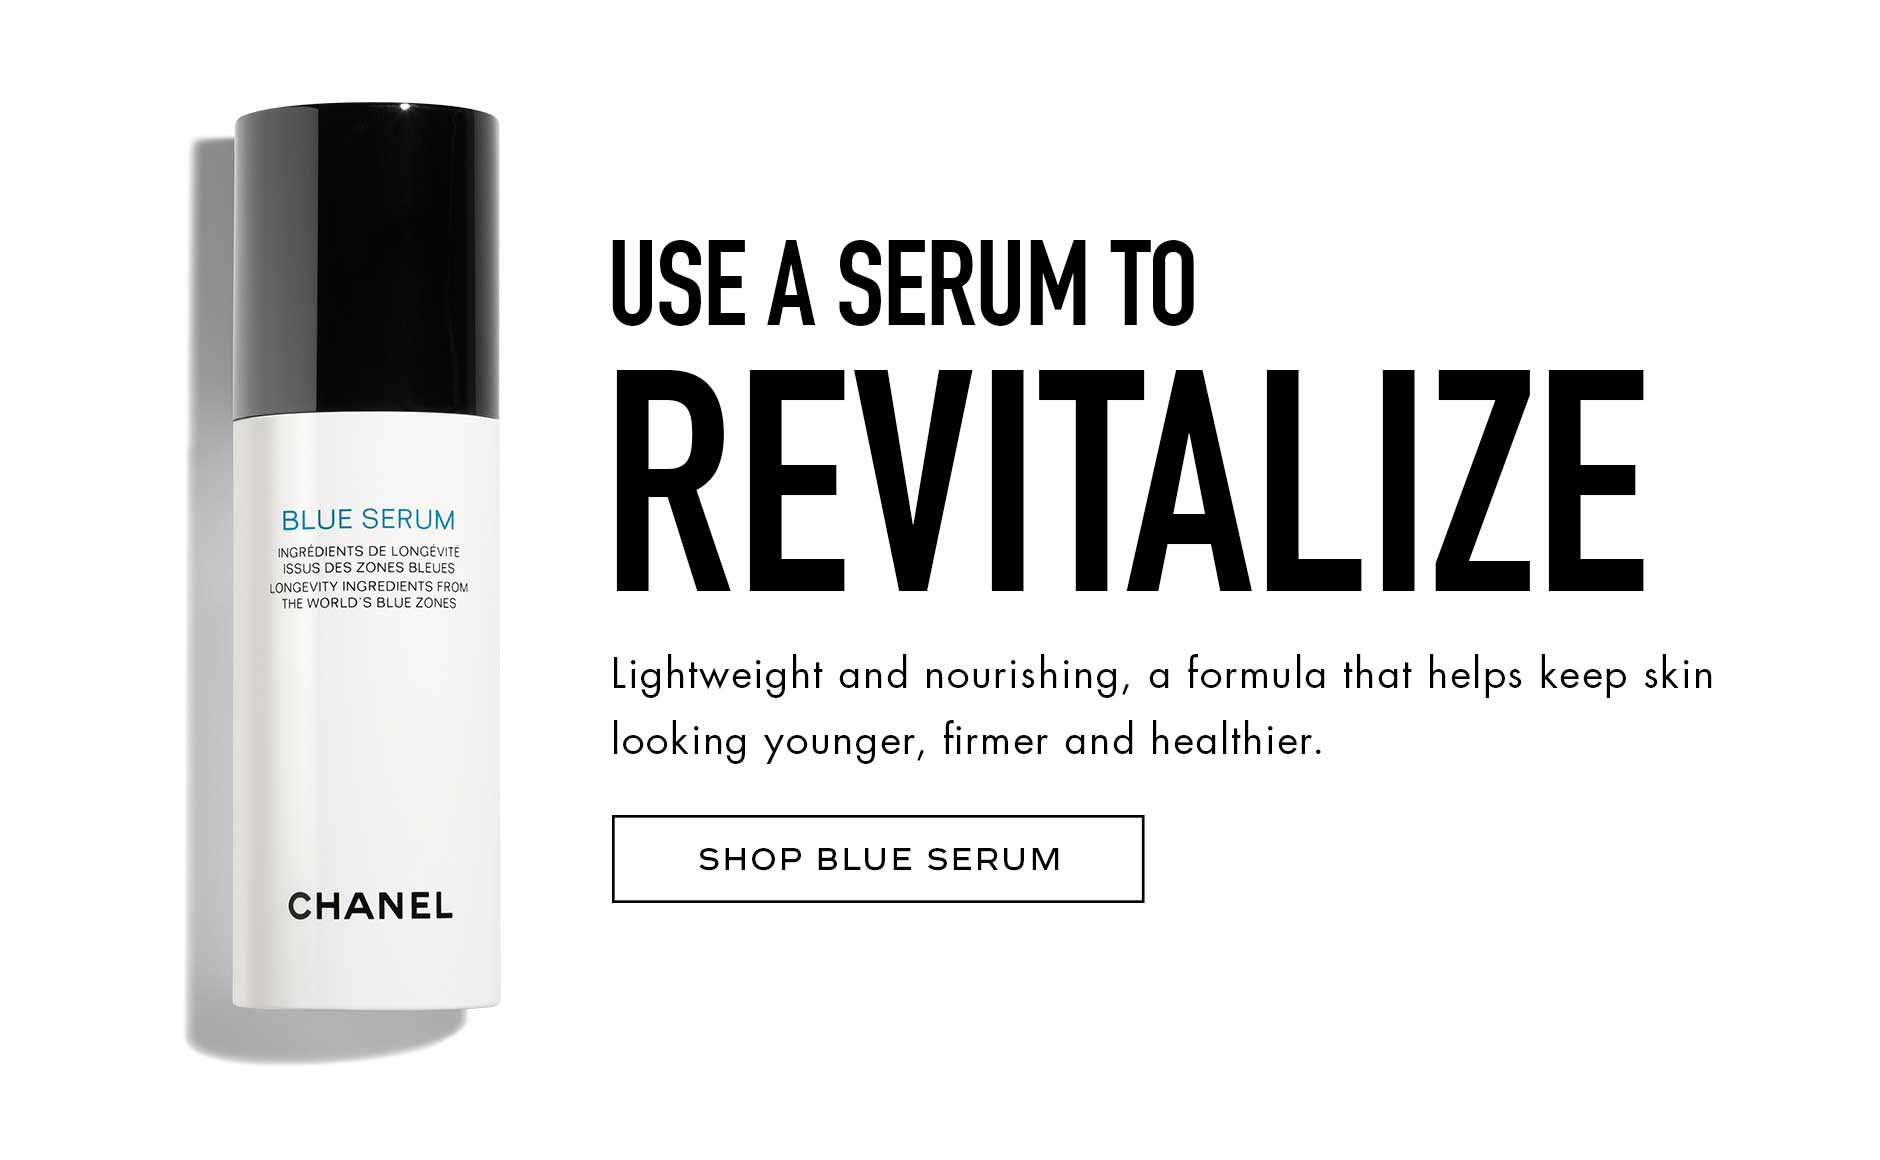 Use a serum to revitalize - Lightweight and nourishing, a formula that helps keep skin looking younger, firmer and healthier.